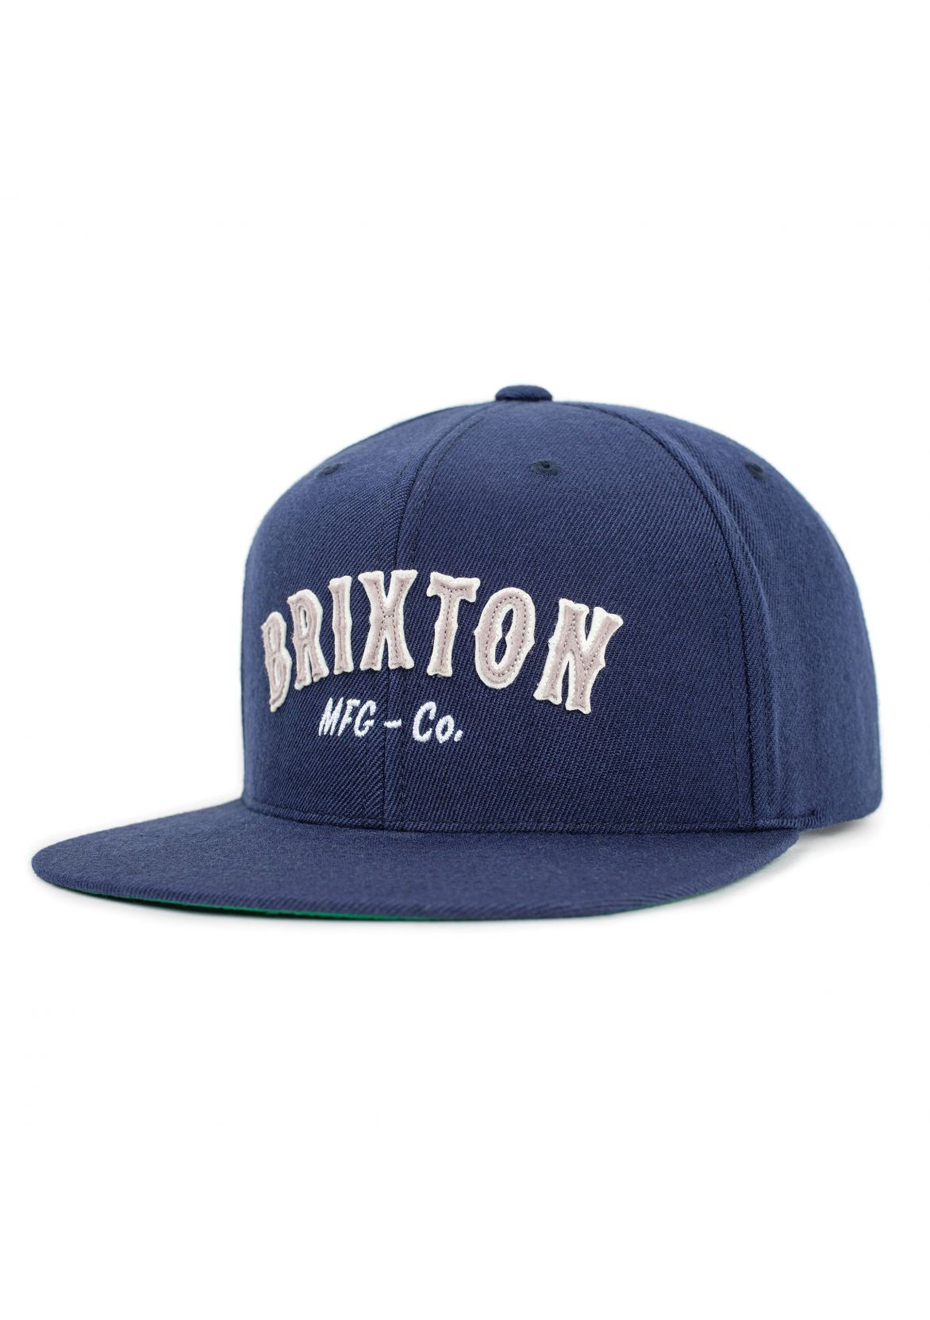 a892c9ac49 ... coupon code for brixton harold snapback navy mens streetwear sale  onceit 5671b 515a3